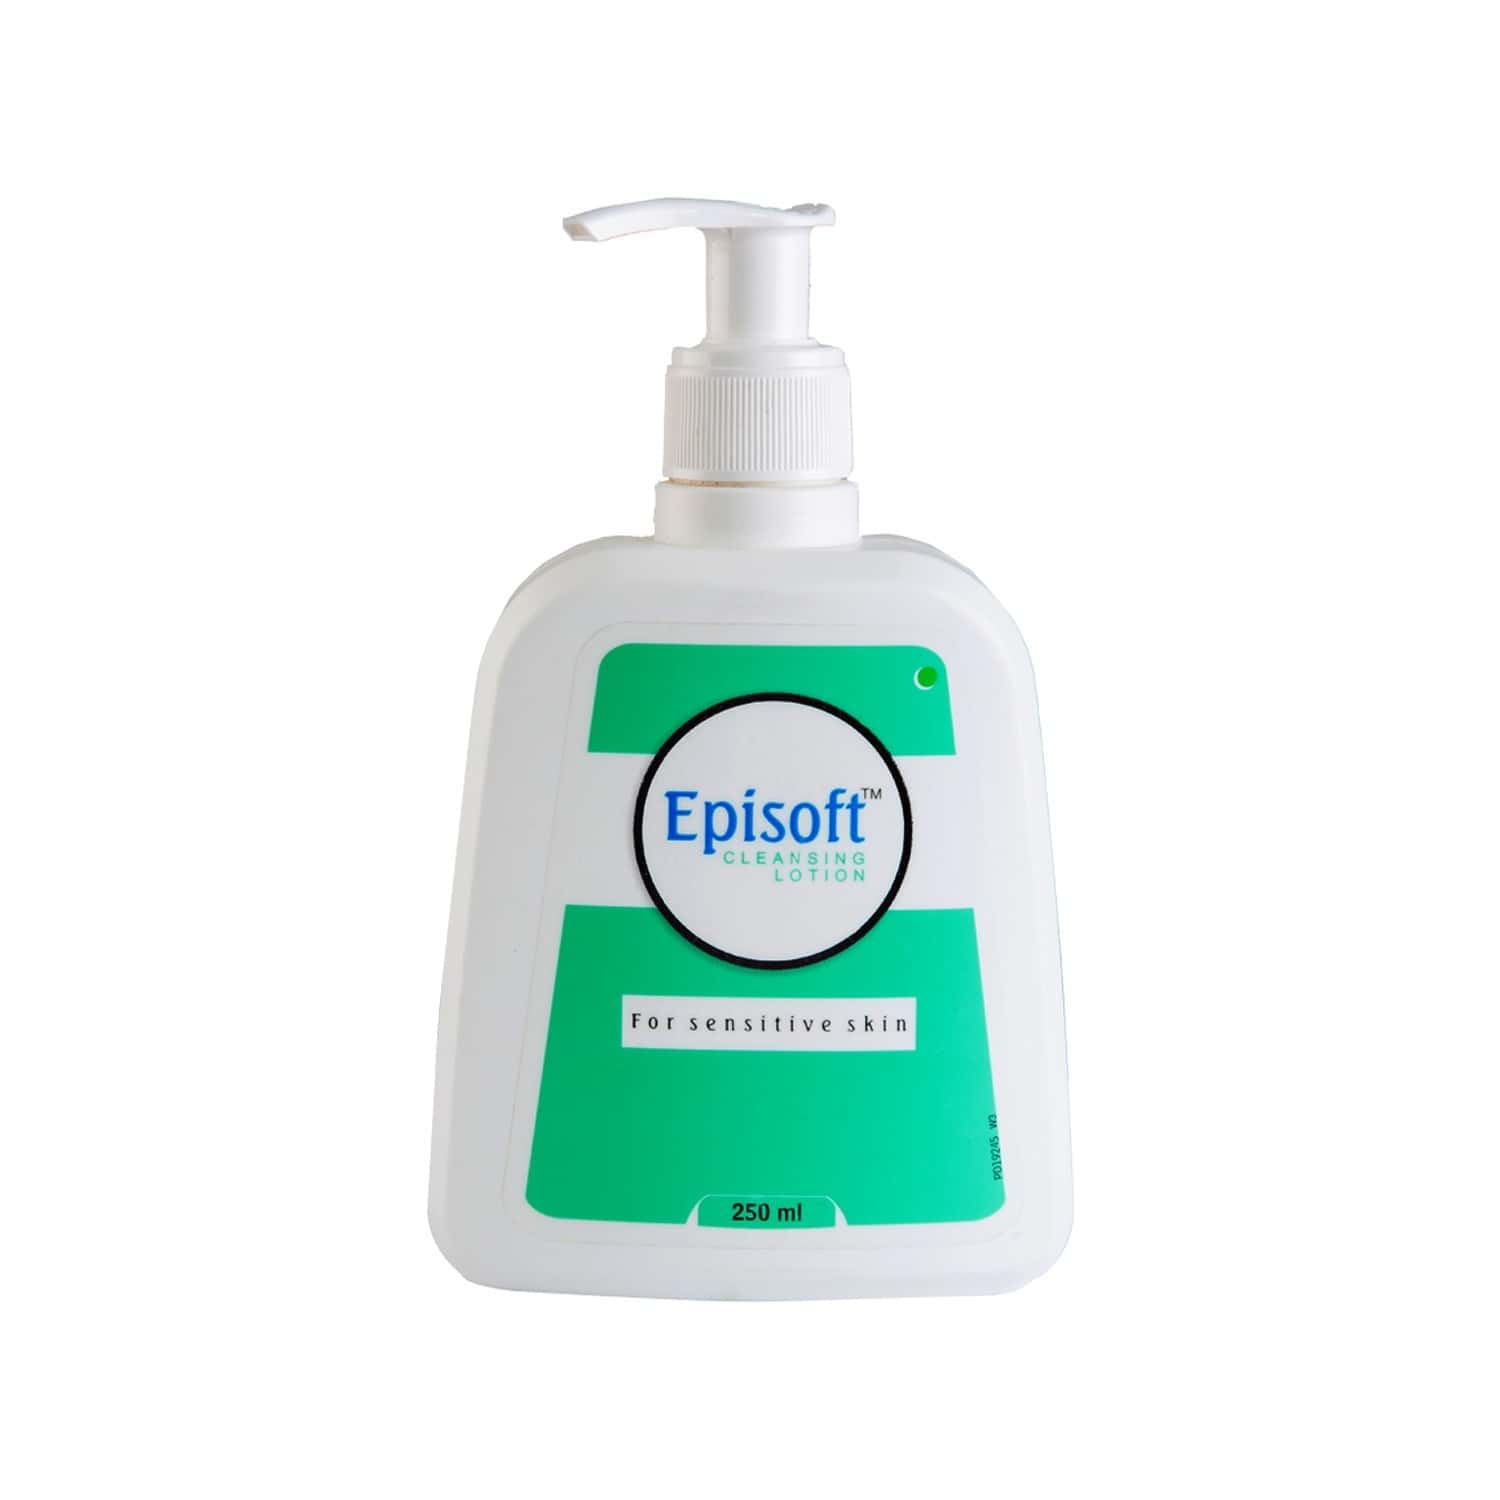 Episoft Cleansing Lotion 250ml